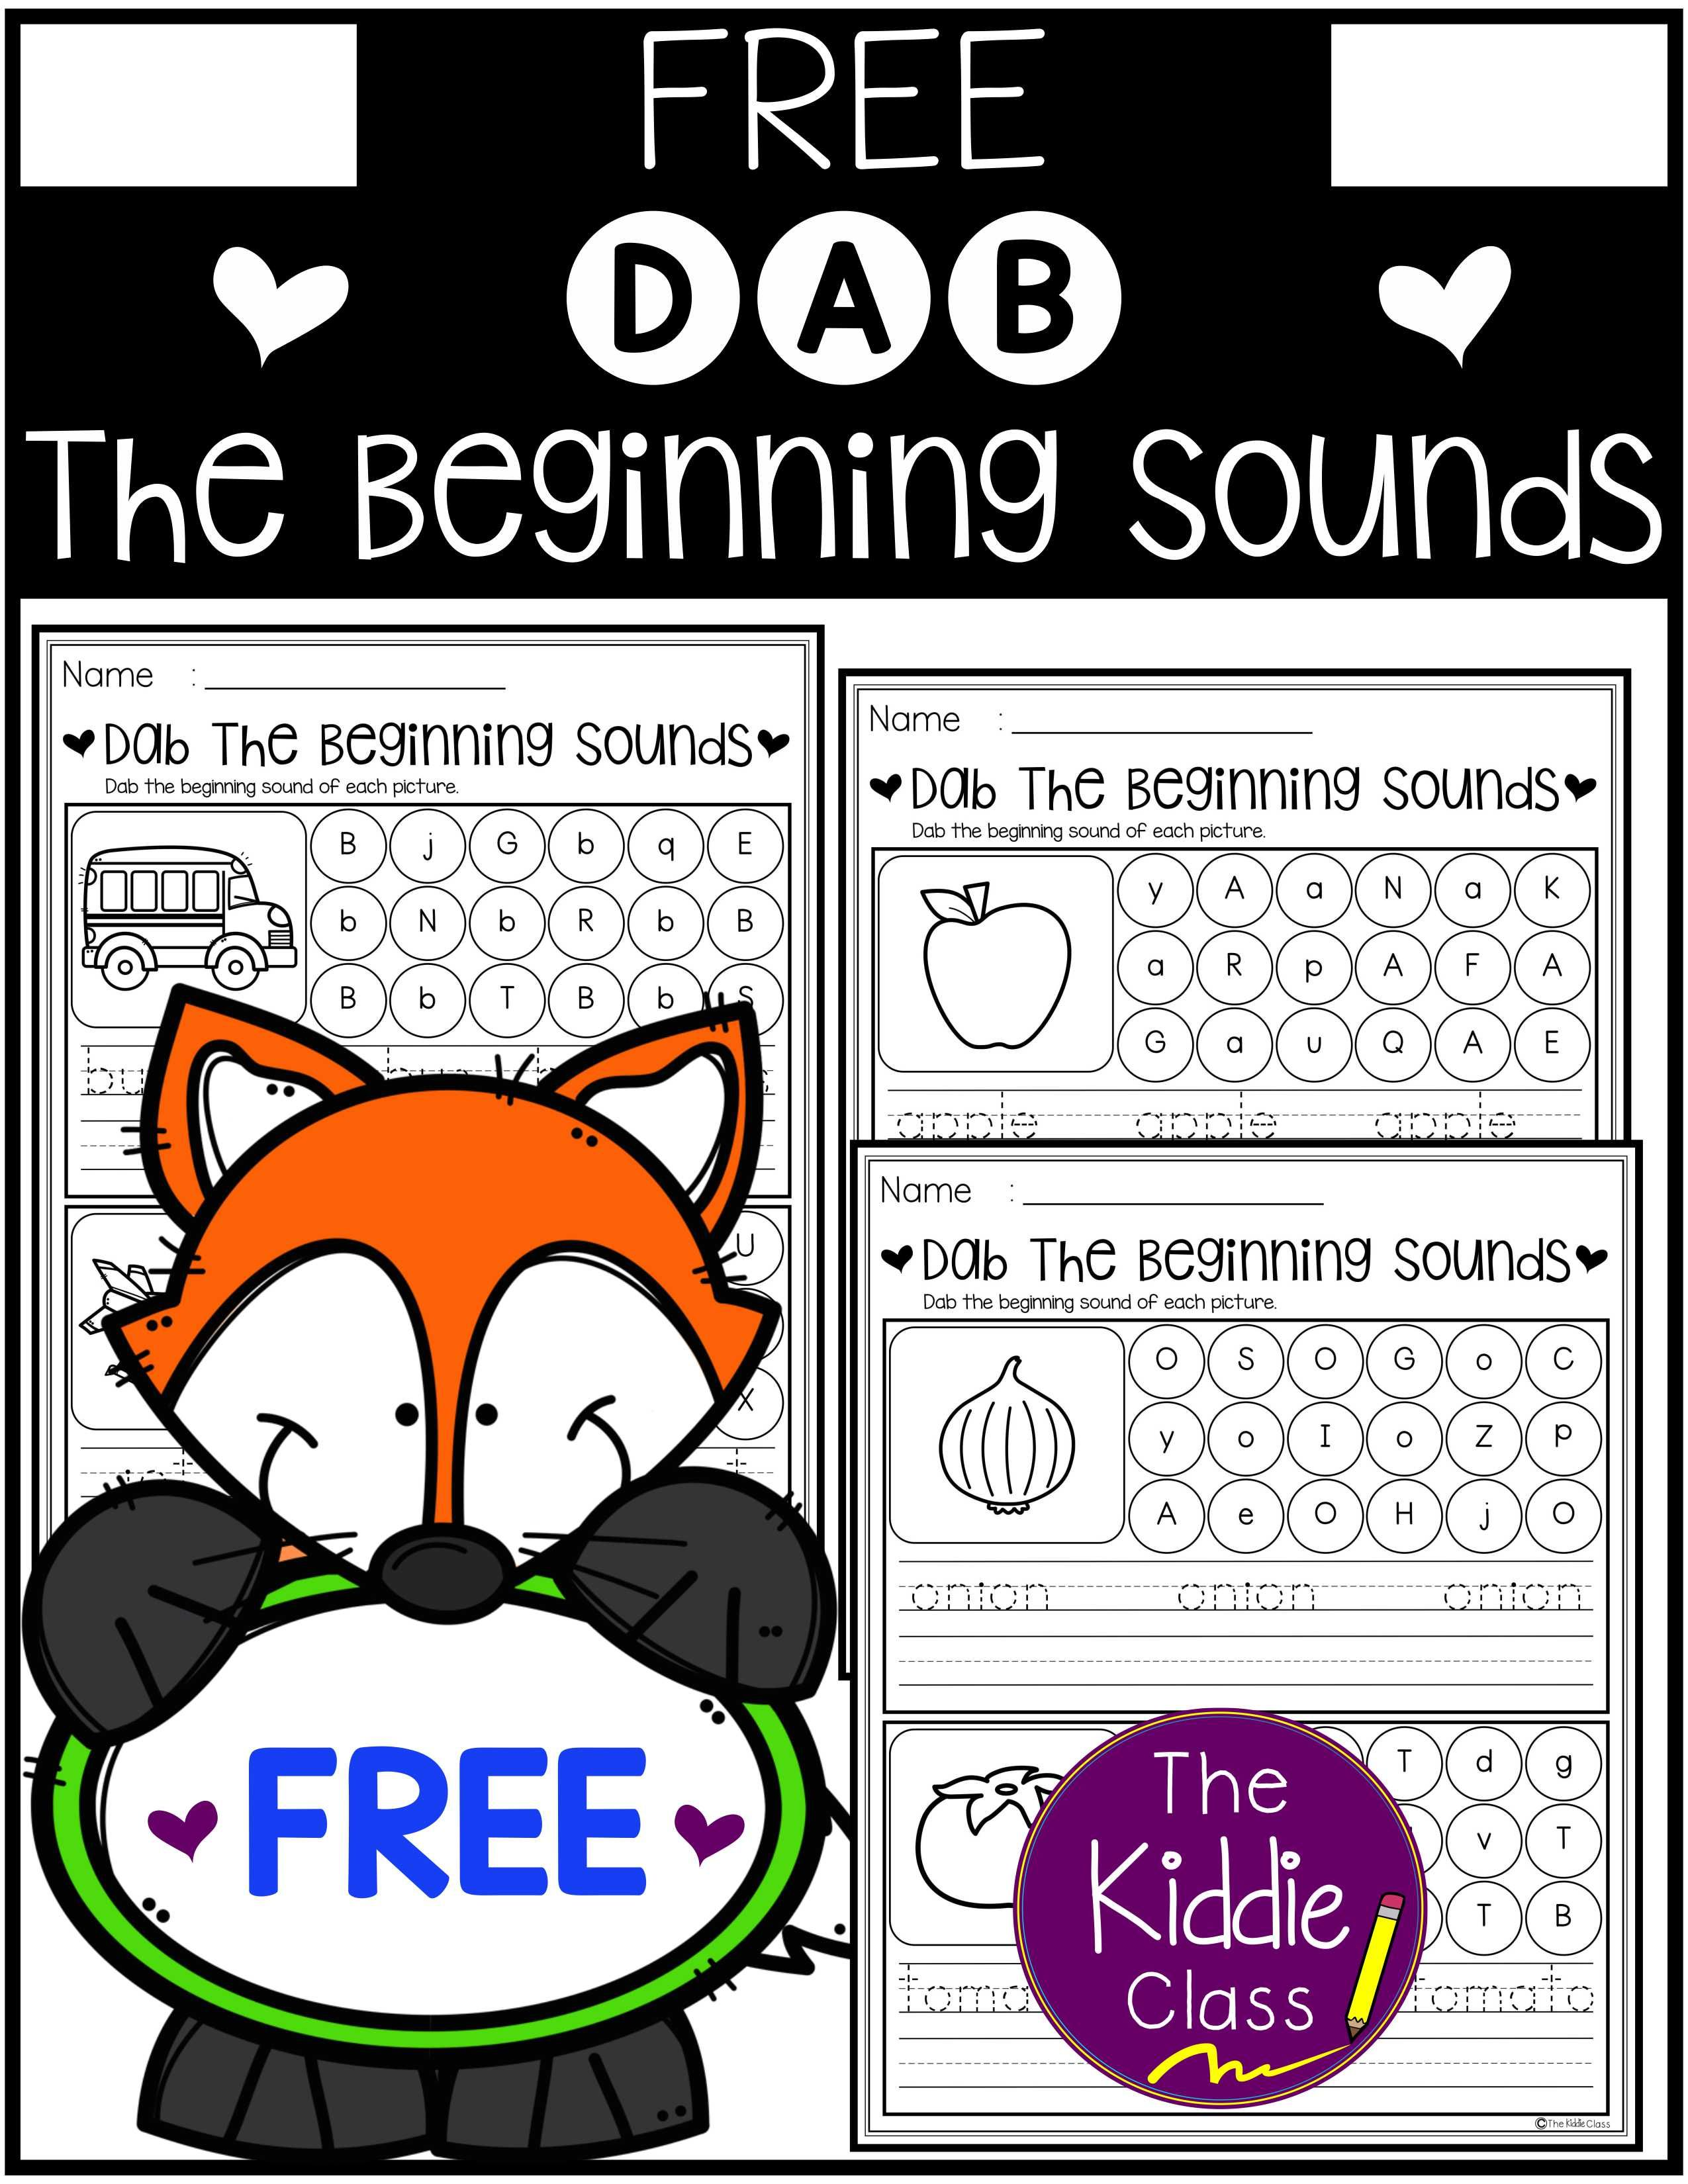 Free Beginning Sounds Dab